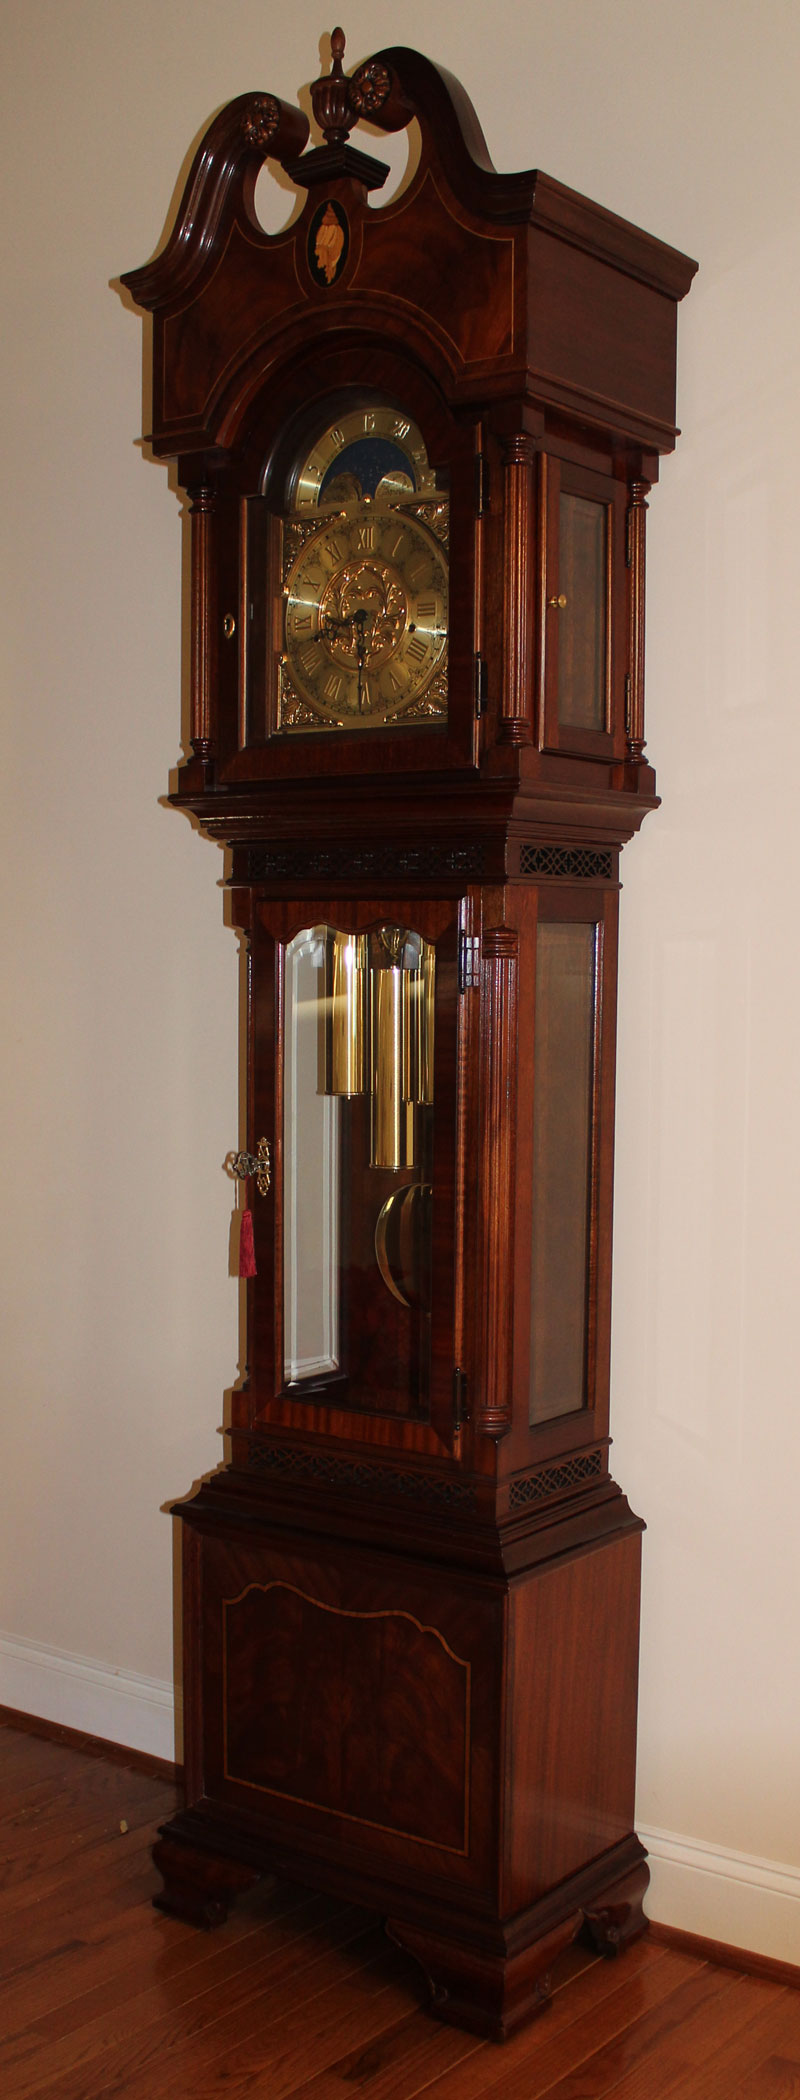 The New Grandfather Clock For Our Home Clocks For Me